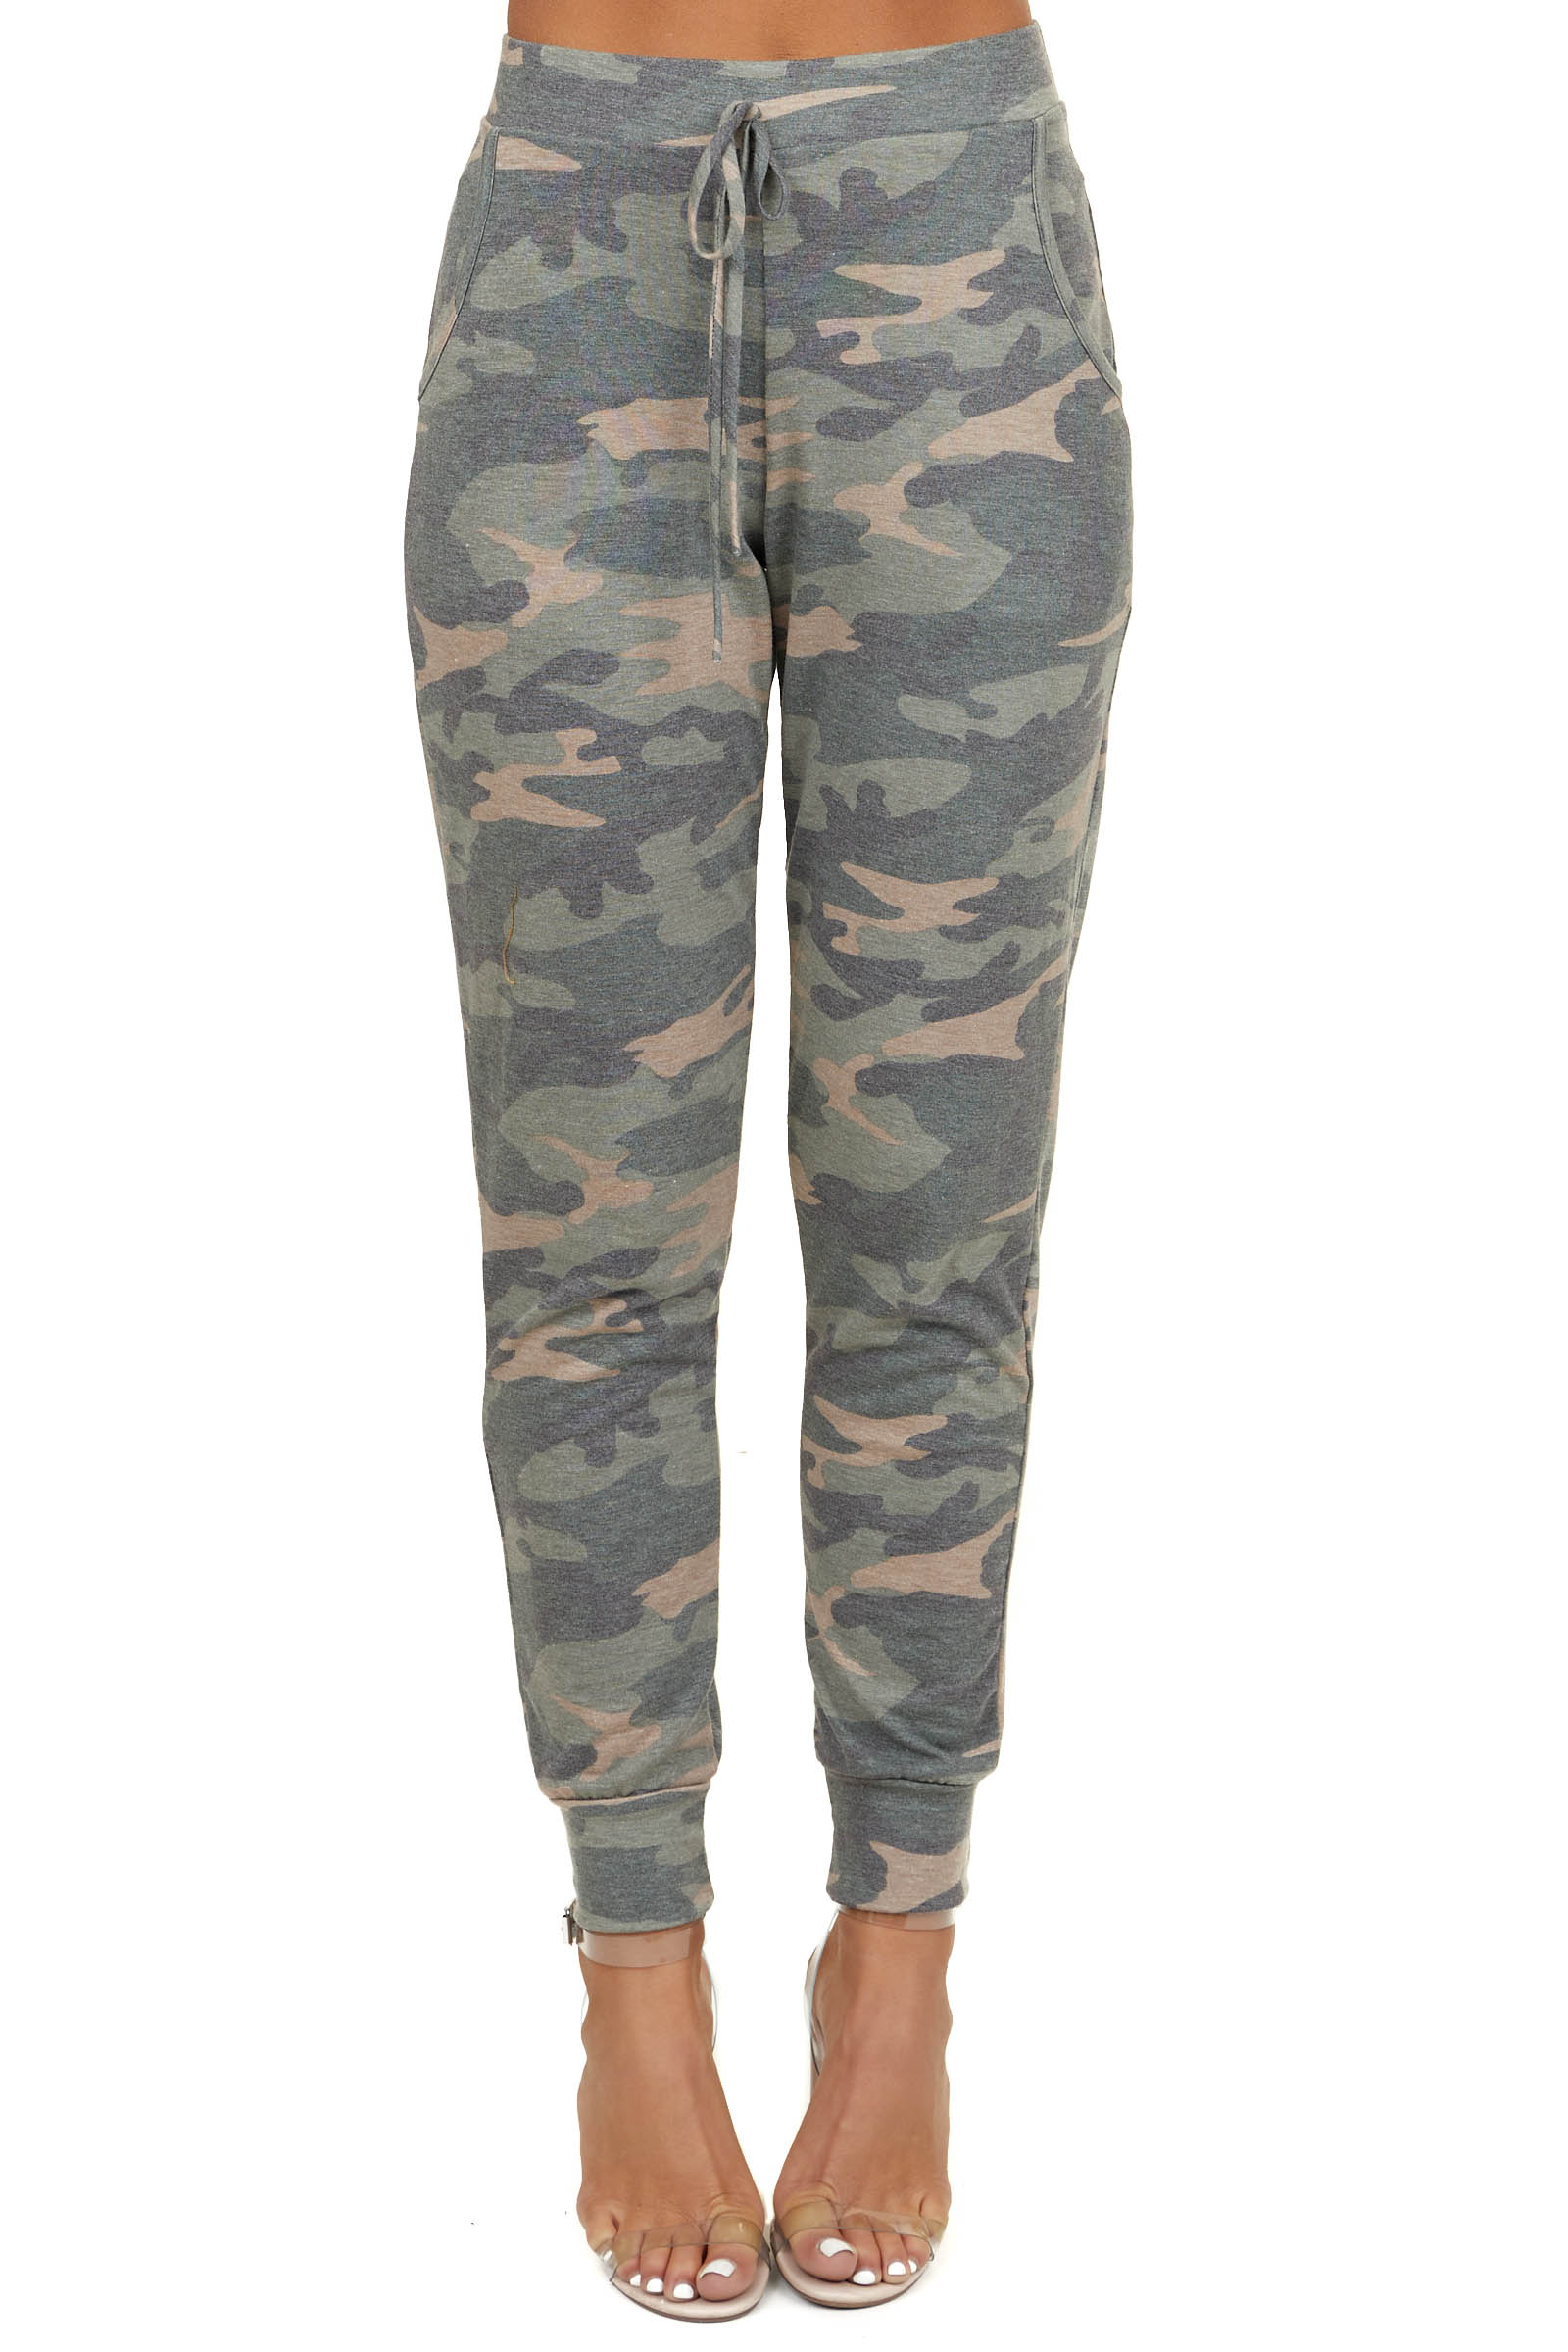 Olive Camo Print Joggers with Pockets and Waist Tie